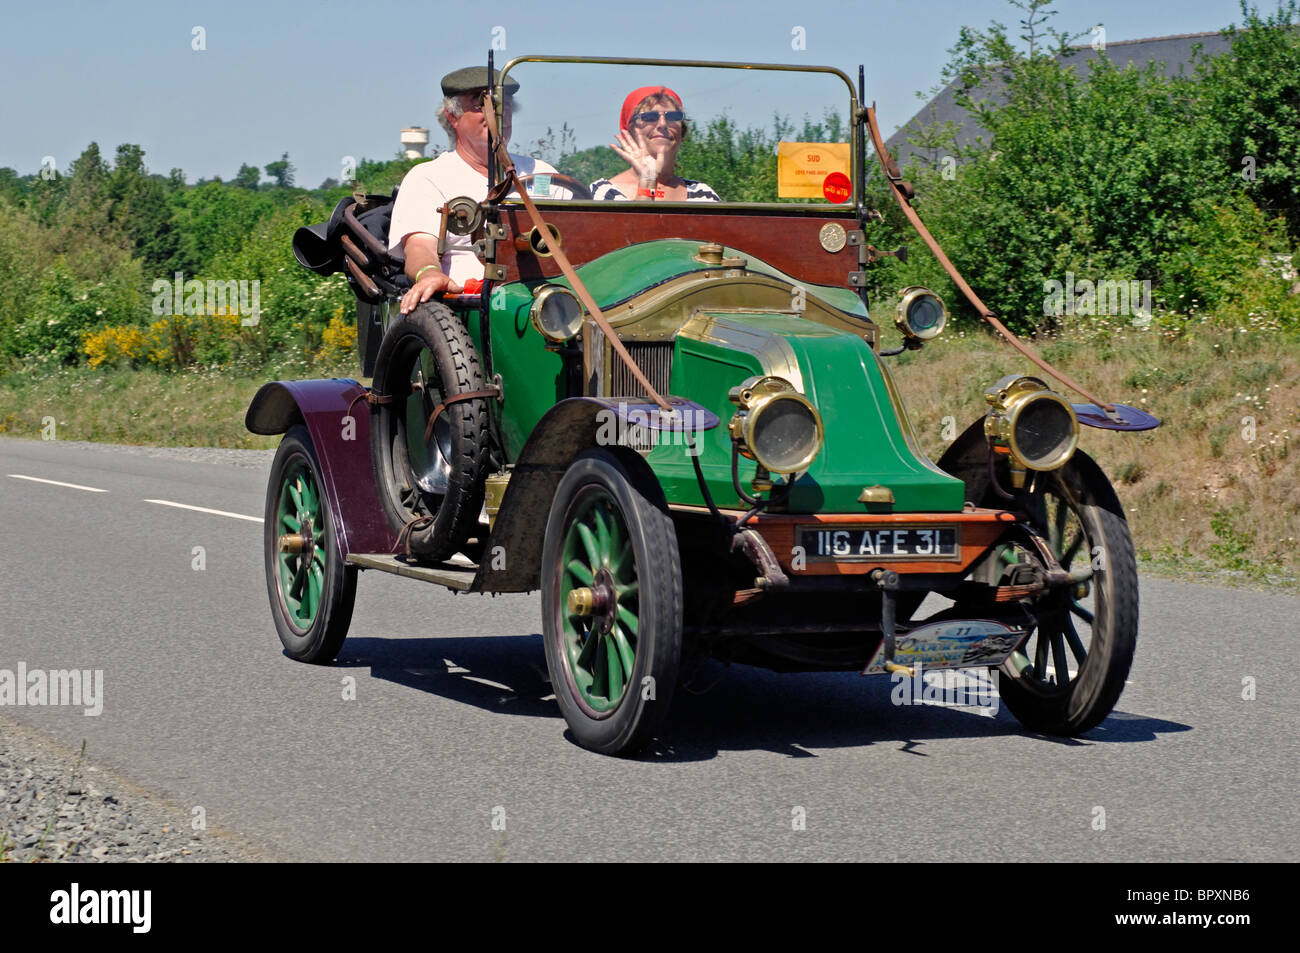 renault ek torpedo 1912 in the tour de bretagne classic car rally stock photo royalty free. Black Bedroom Furniture Sets. Home Design Ideas